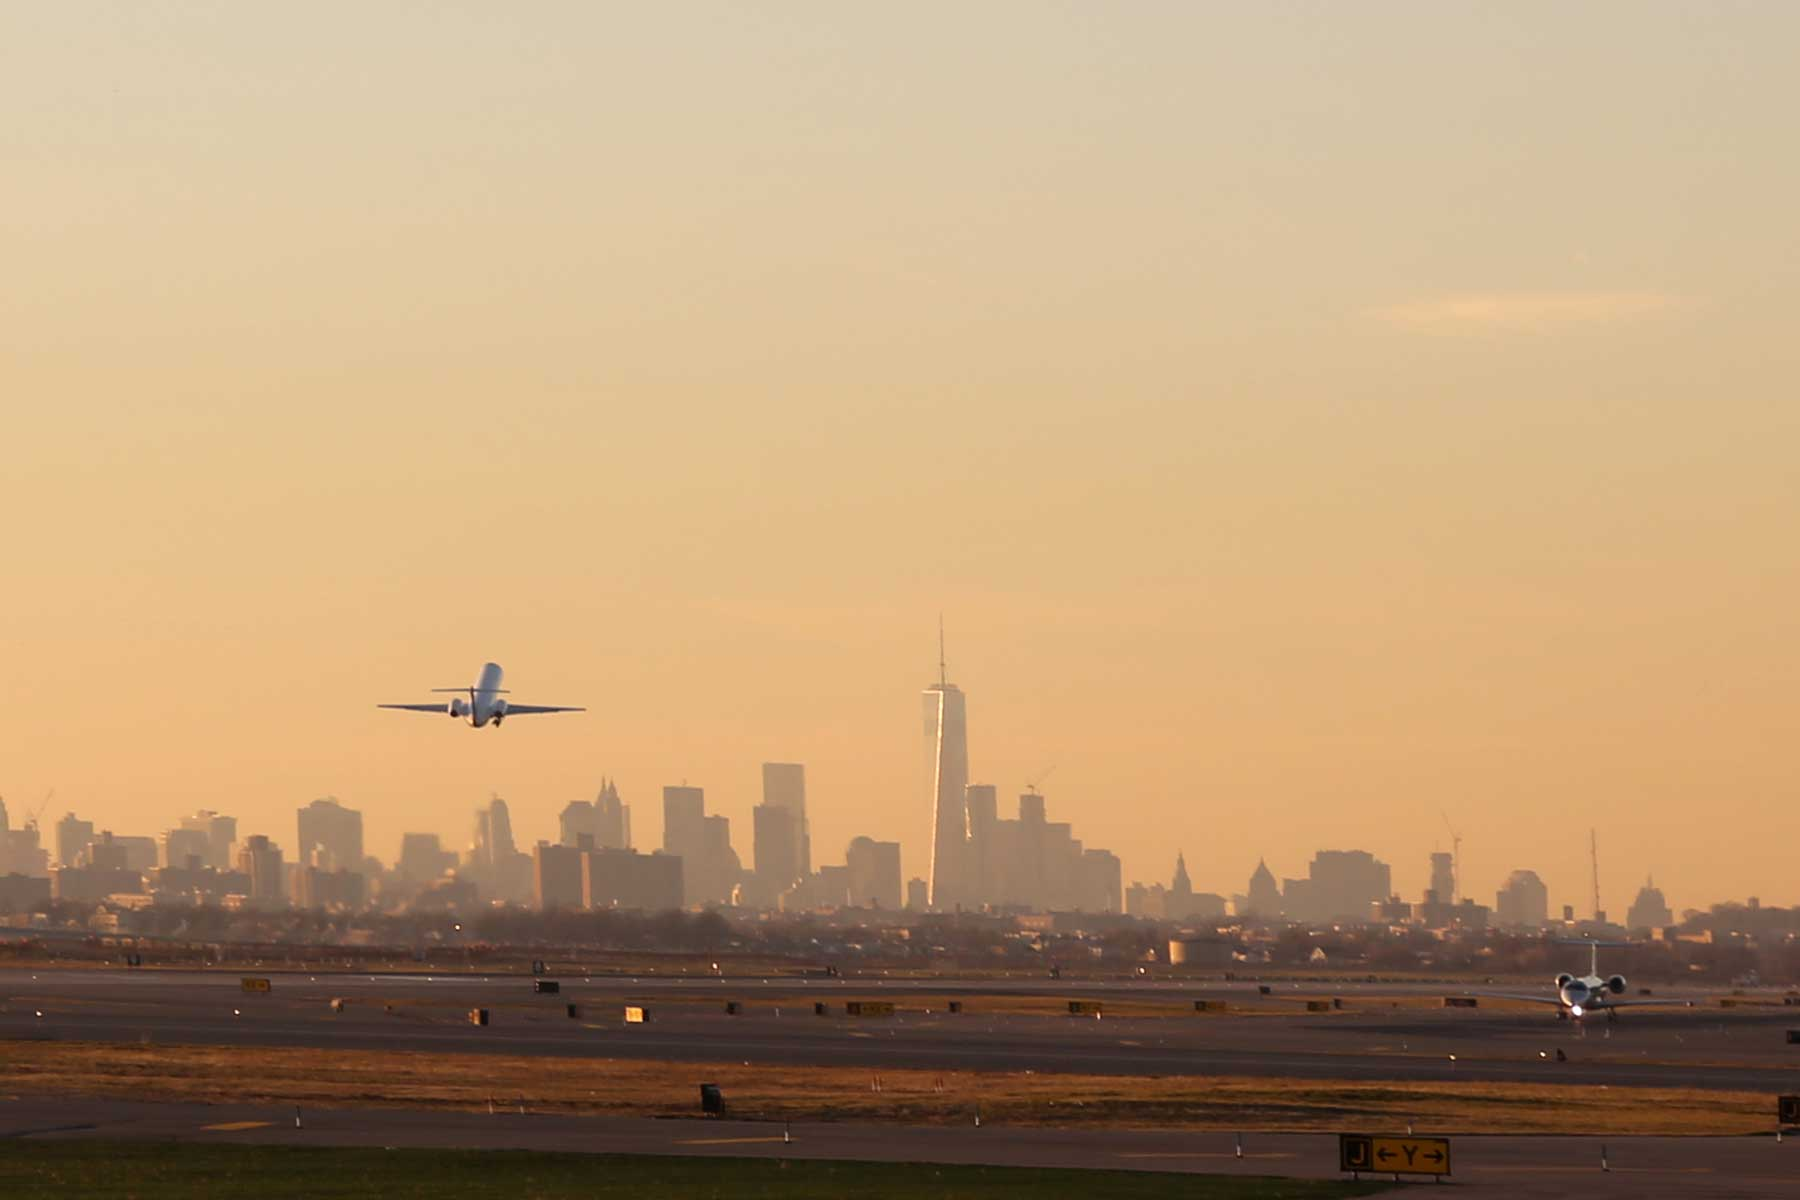 Airplane Take Off from JFK Airport with New York City Skyline